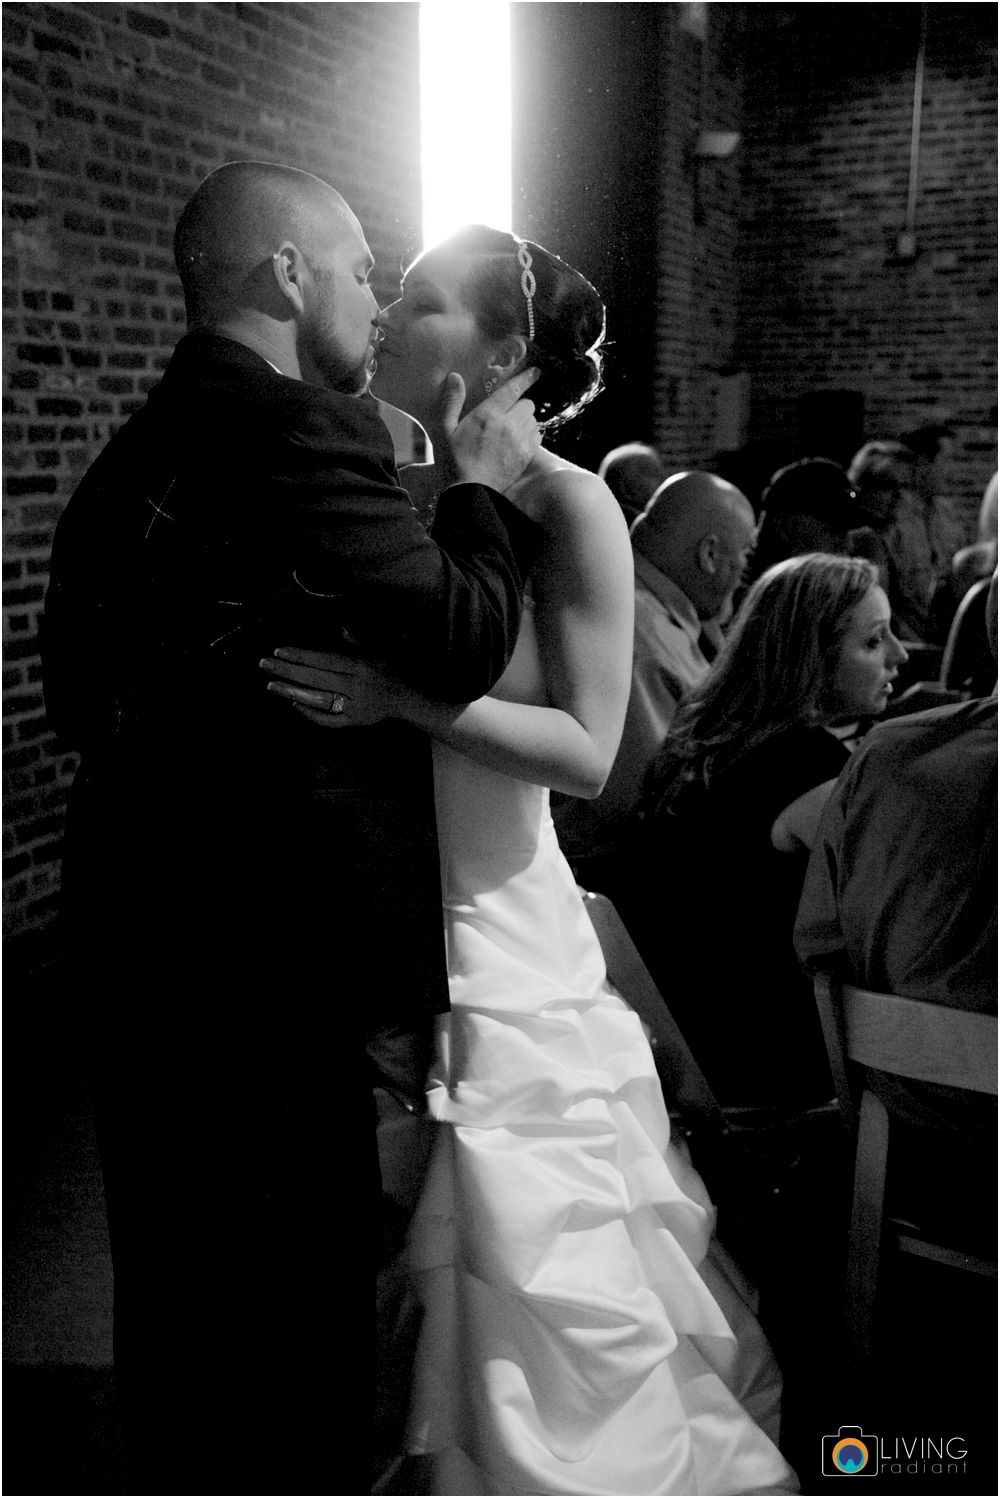 jessica-kevin-mcnally-AVAM-american-visionary-art-museum-downtown-federal-hill-baltimore-inner-harbor-wedding-living-radiant-photography-maggie-patrick-nolan_0083.jpg